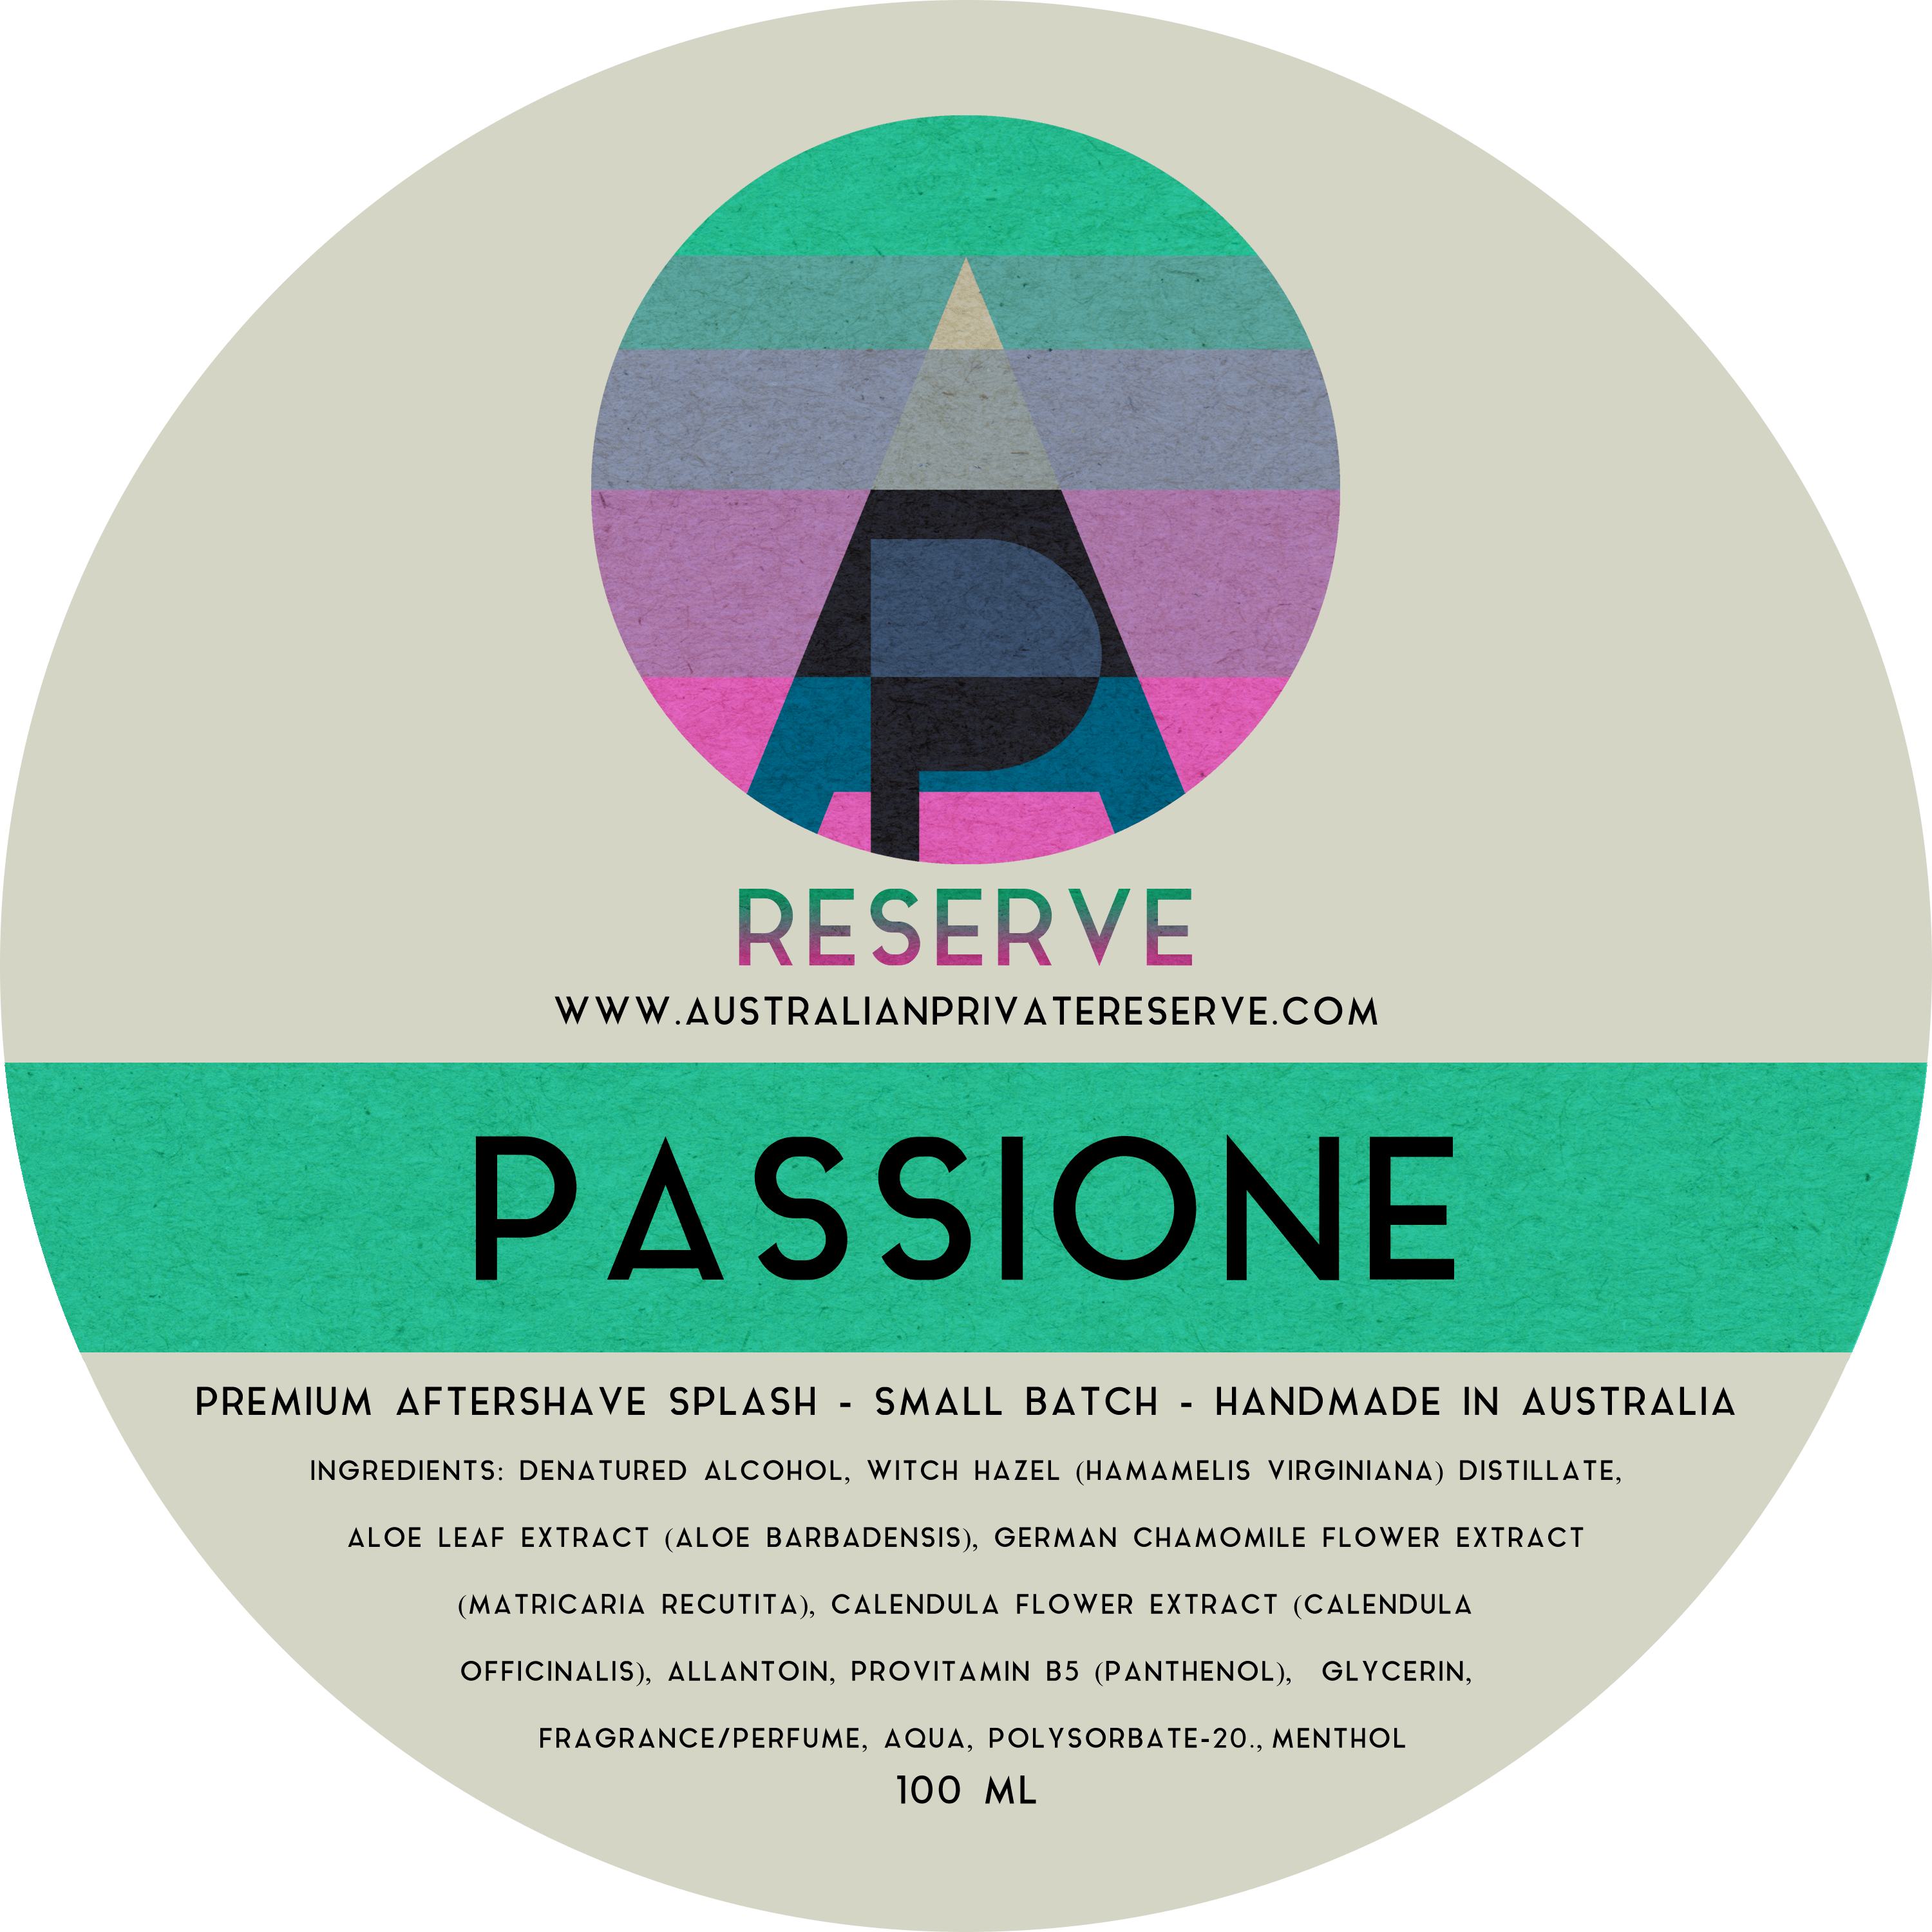 Australian Private Reserve - Passione - Aftershave image